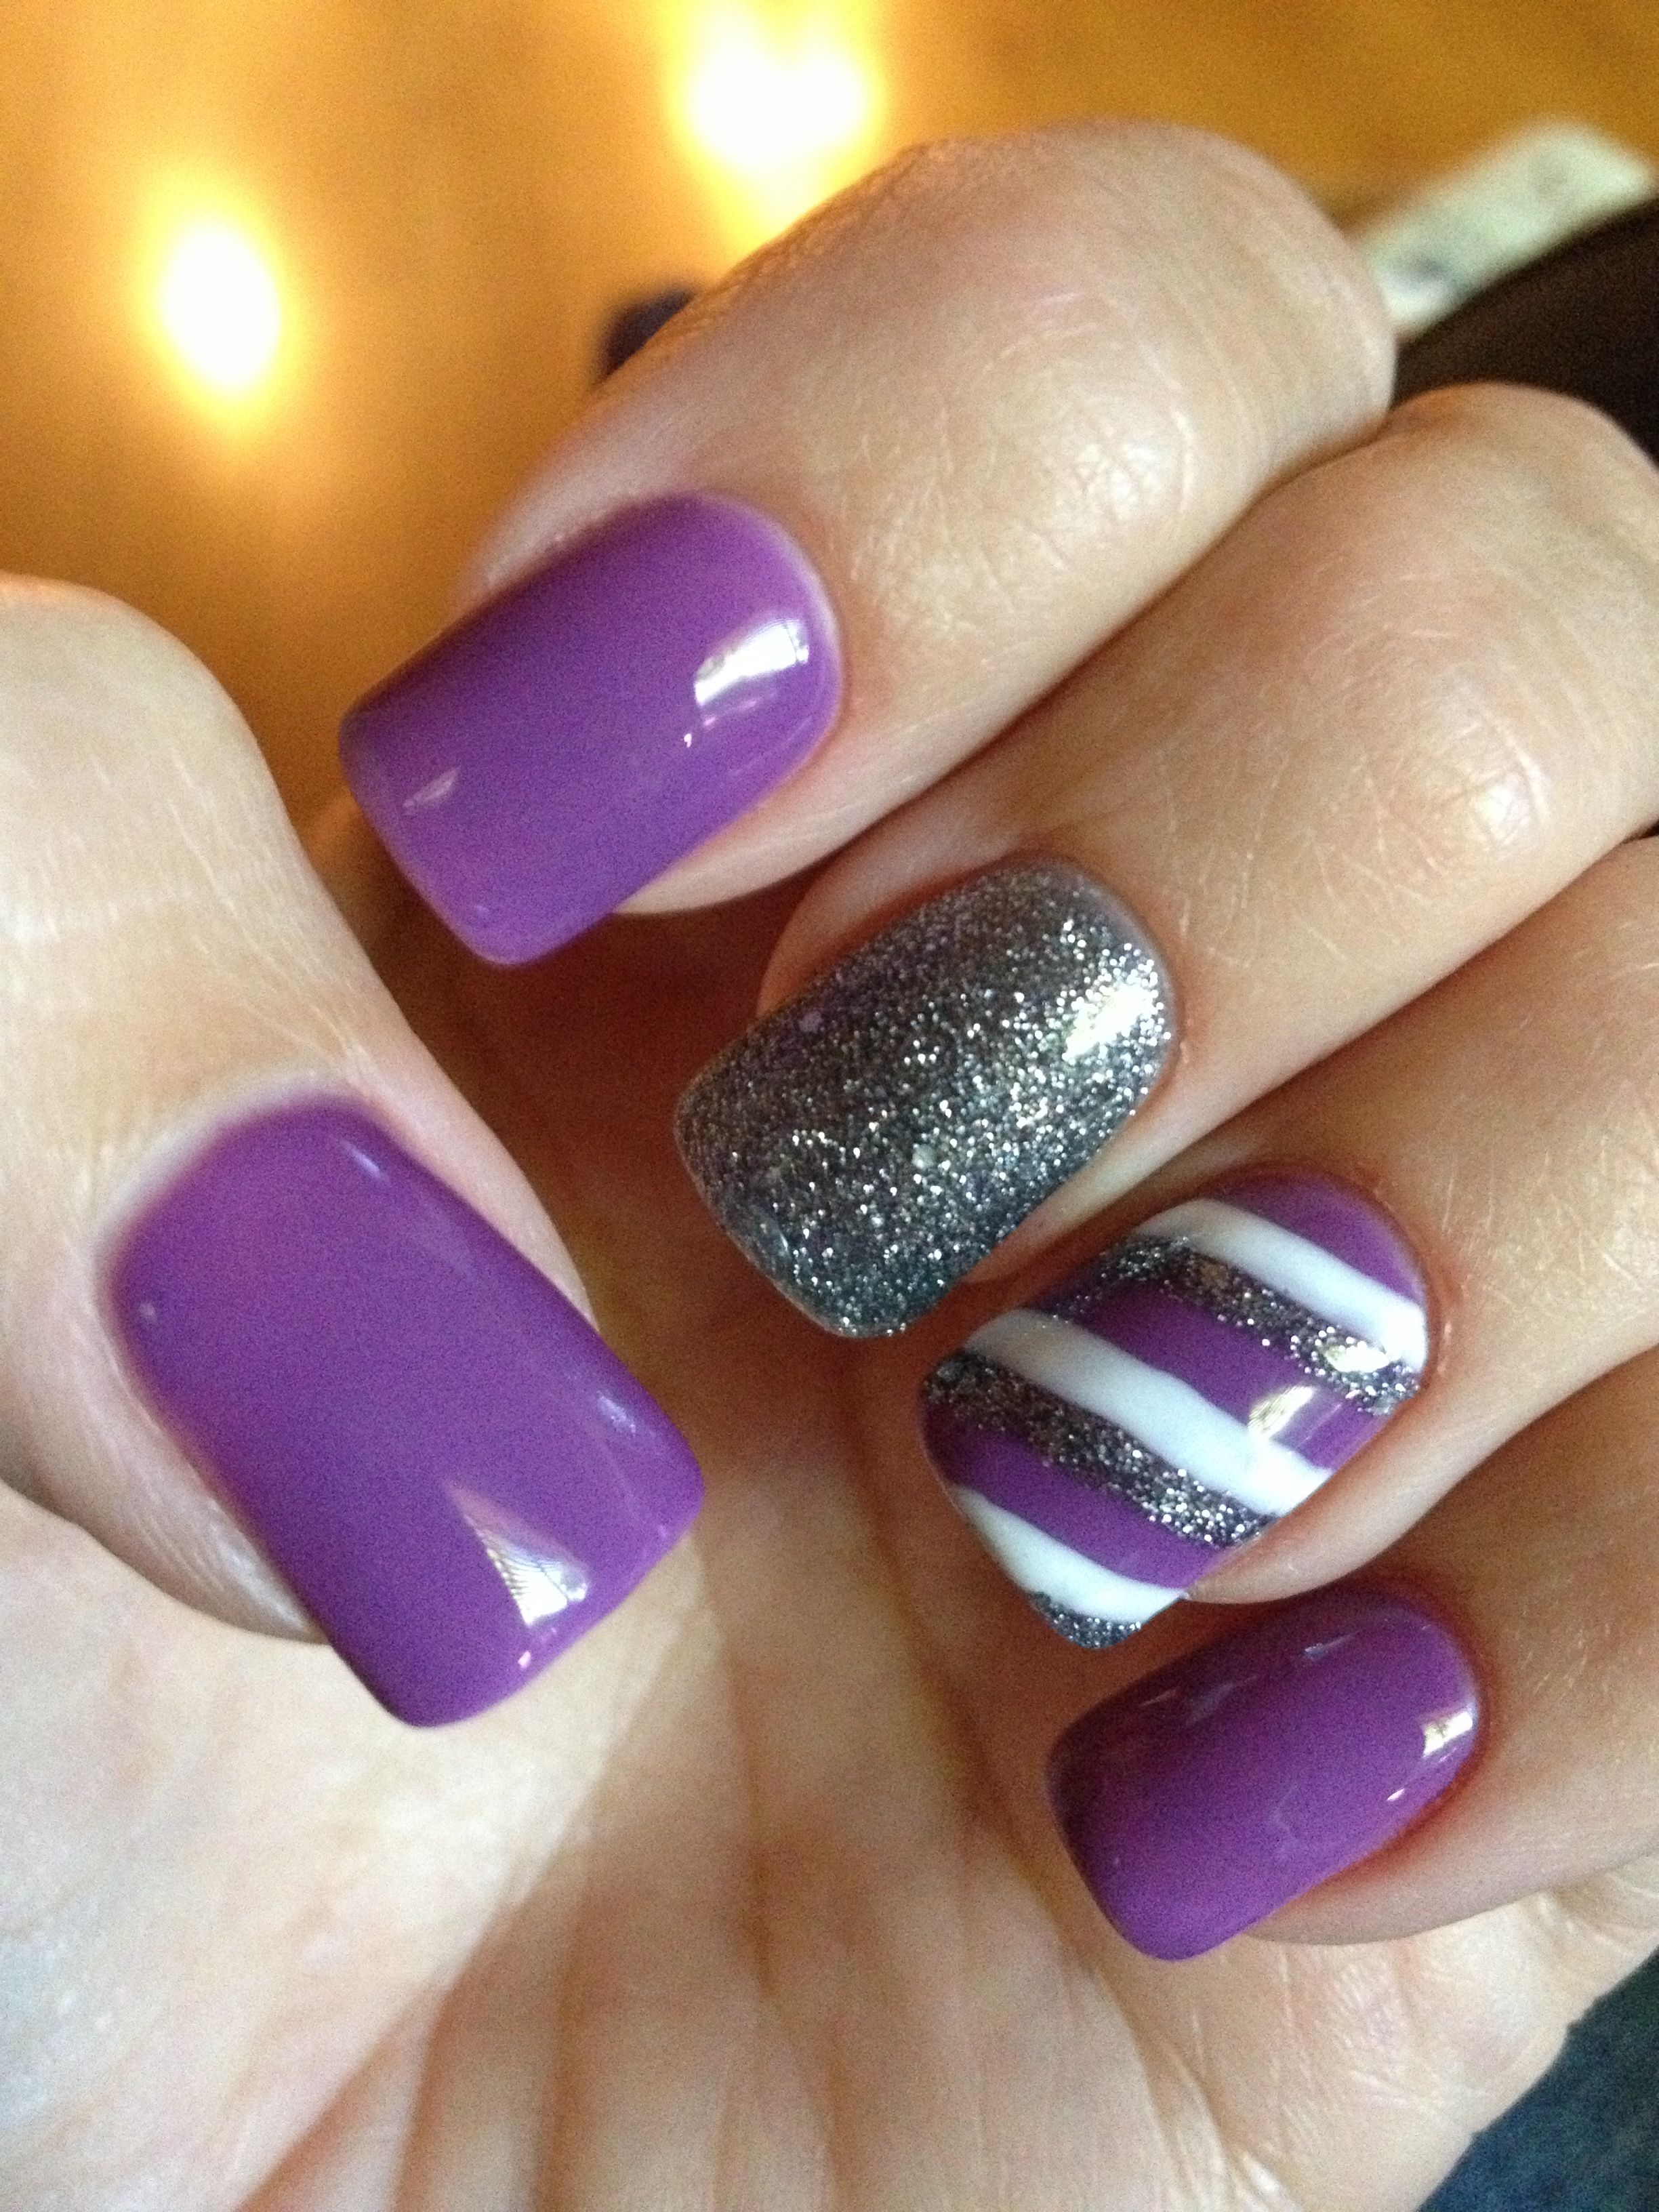 Purple Nails With Sparkles Cute Idea For Dance Co Activity See More At Http Www Nailsss Com Colorf Purple Nail Art Purple Nail Art Designs Purple Nails